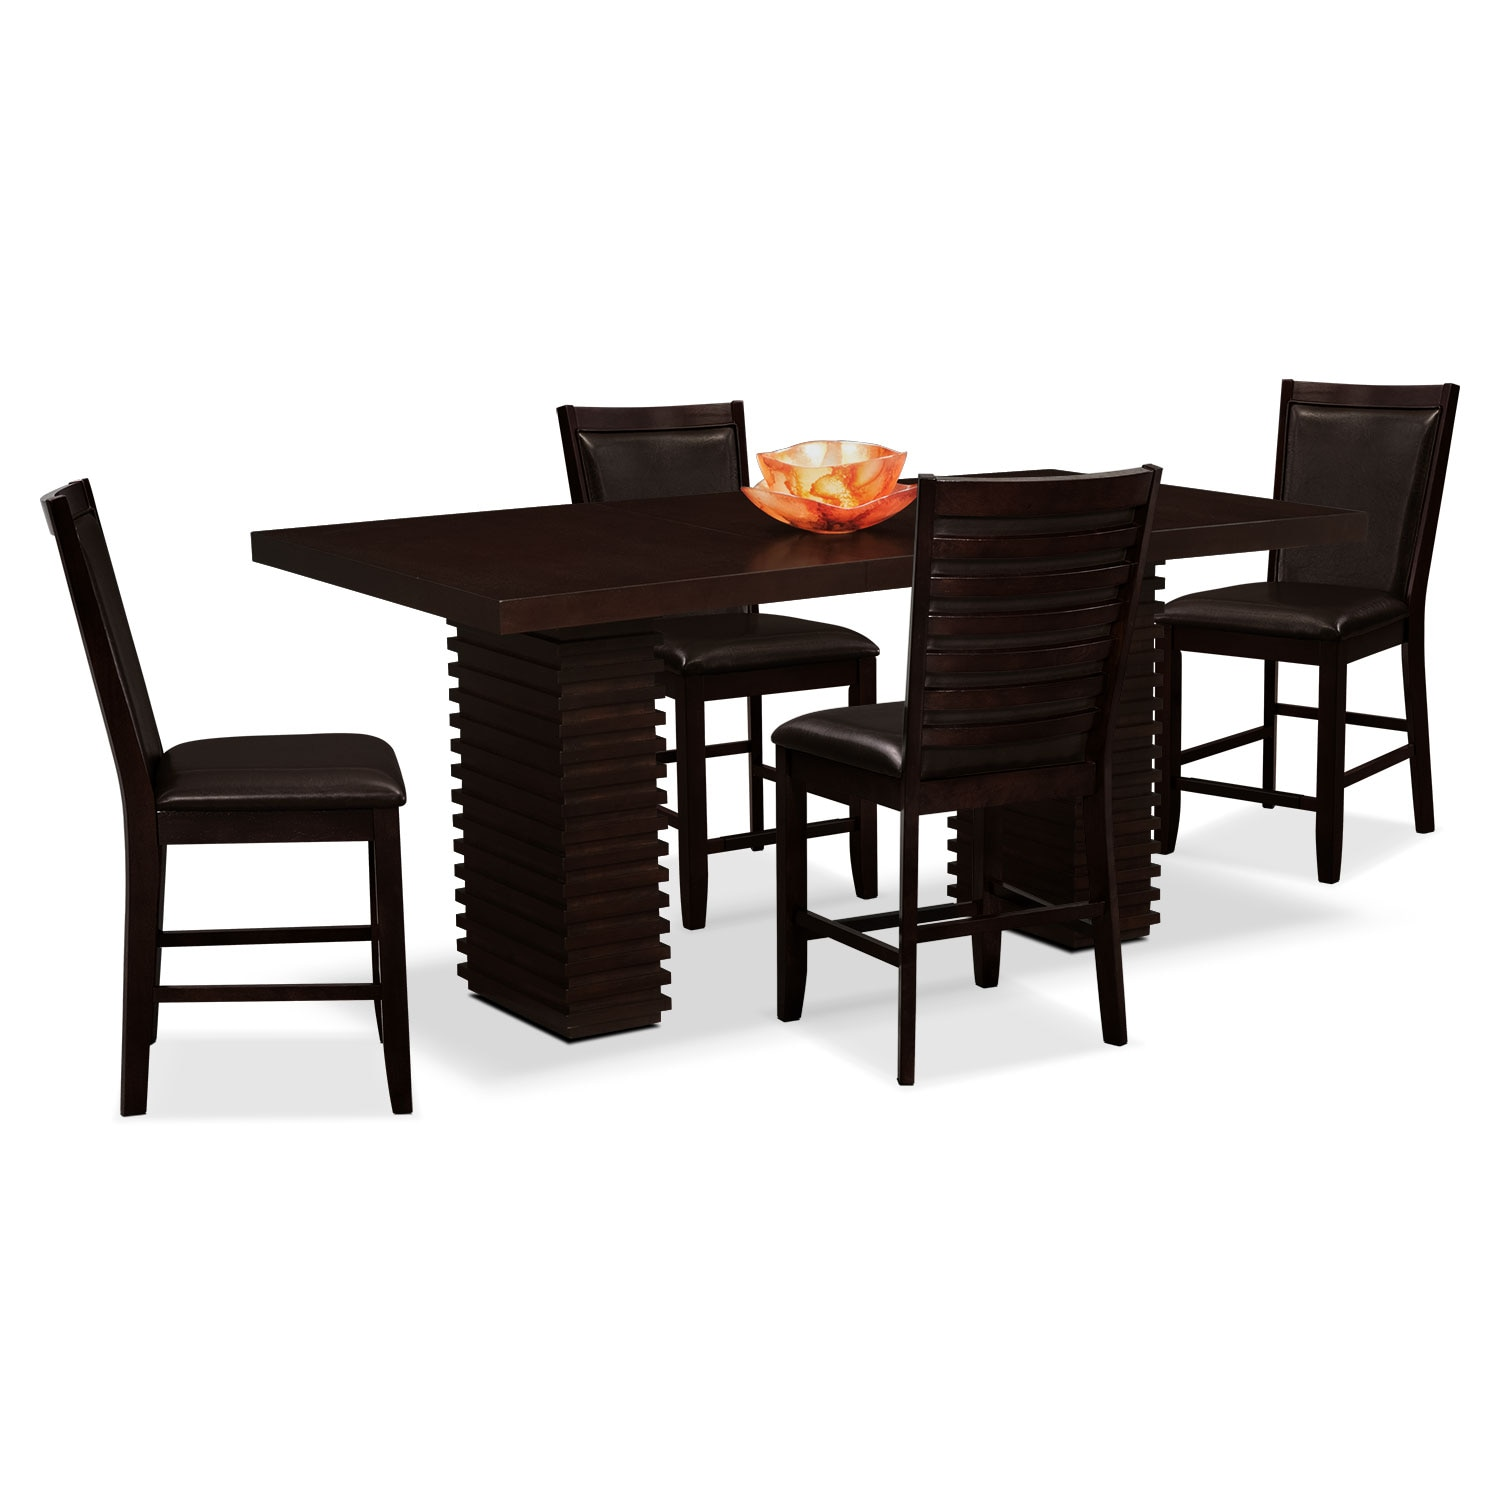 Paragon Counter-Height Table and 4 Chairs - Brown